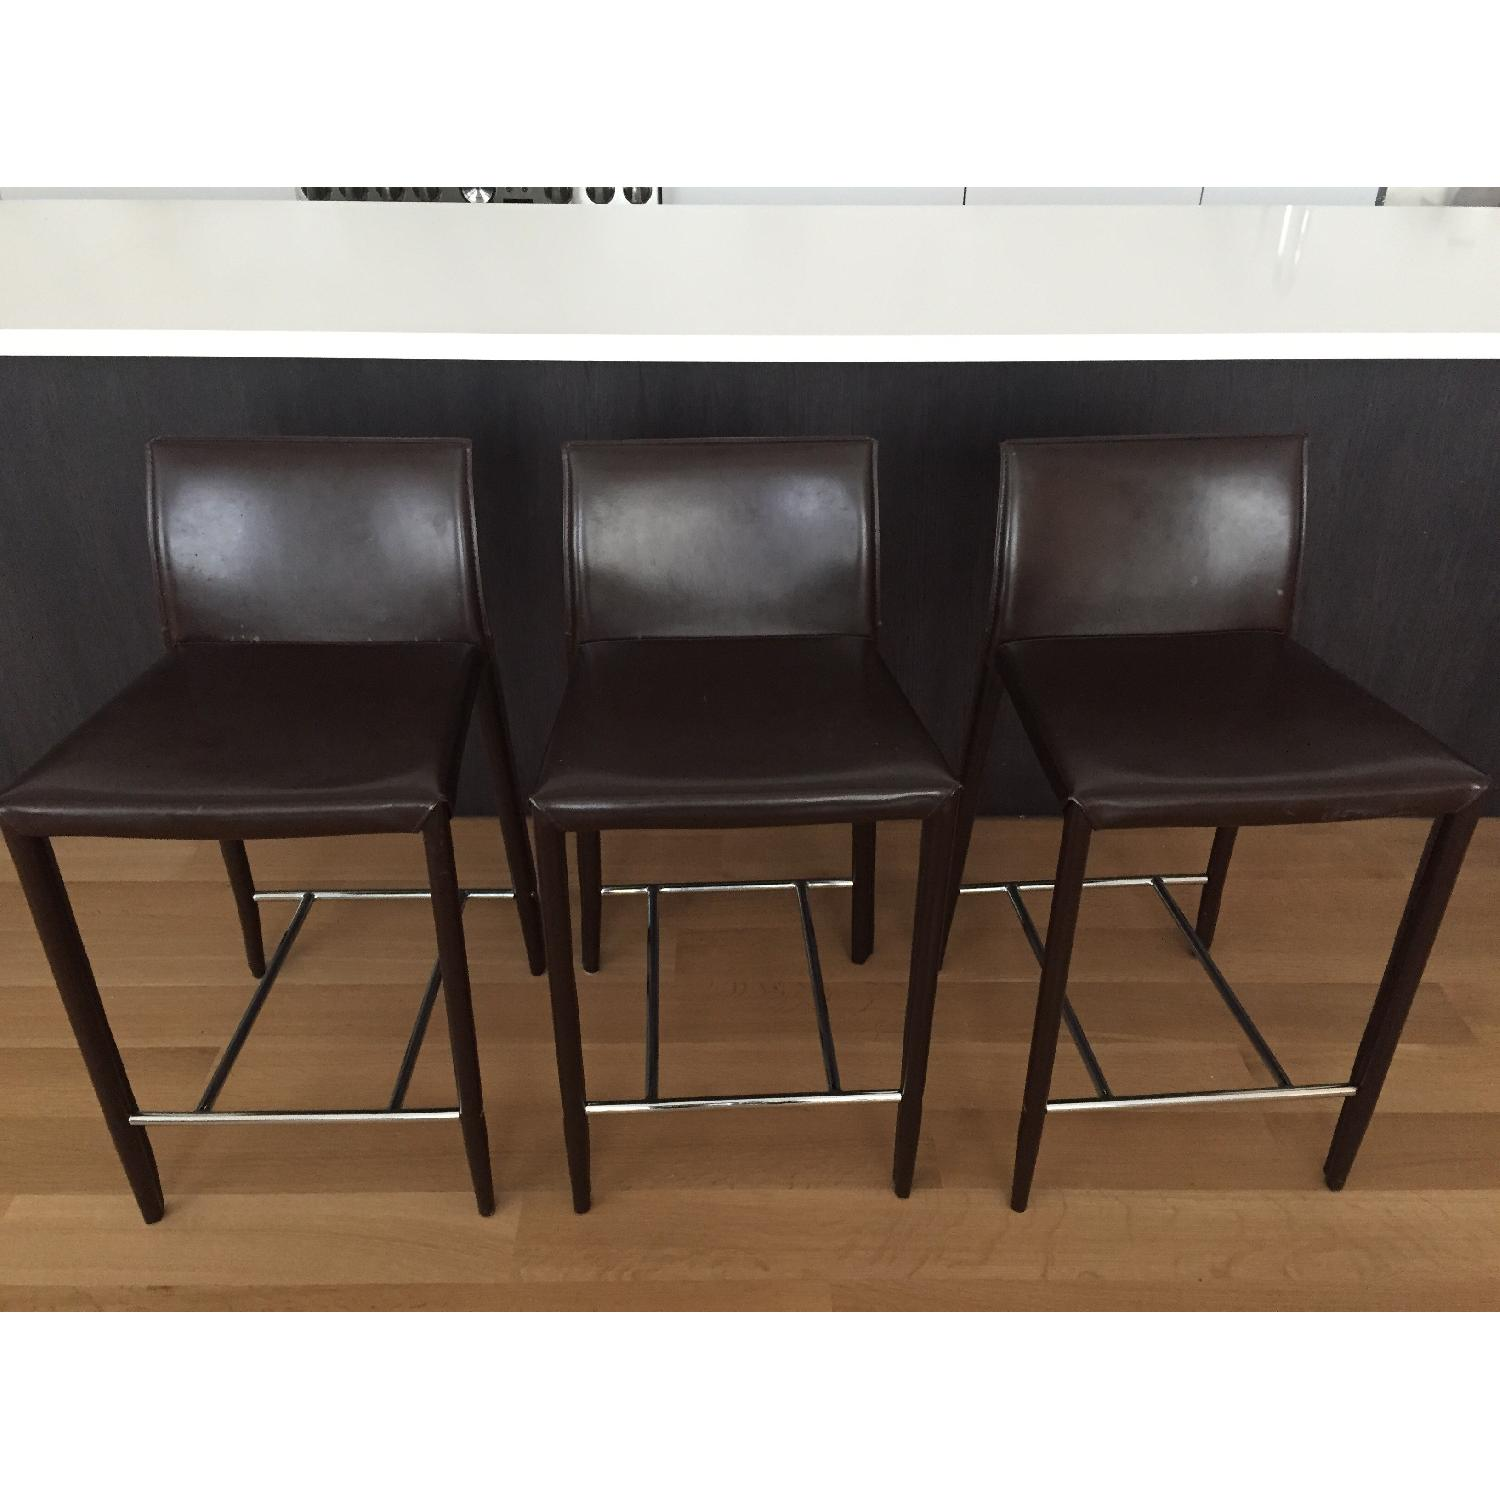 Room & Board Enzo Counter Stool - Set of 3 - image-3